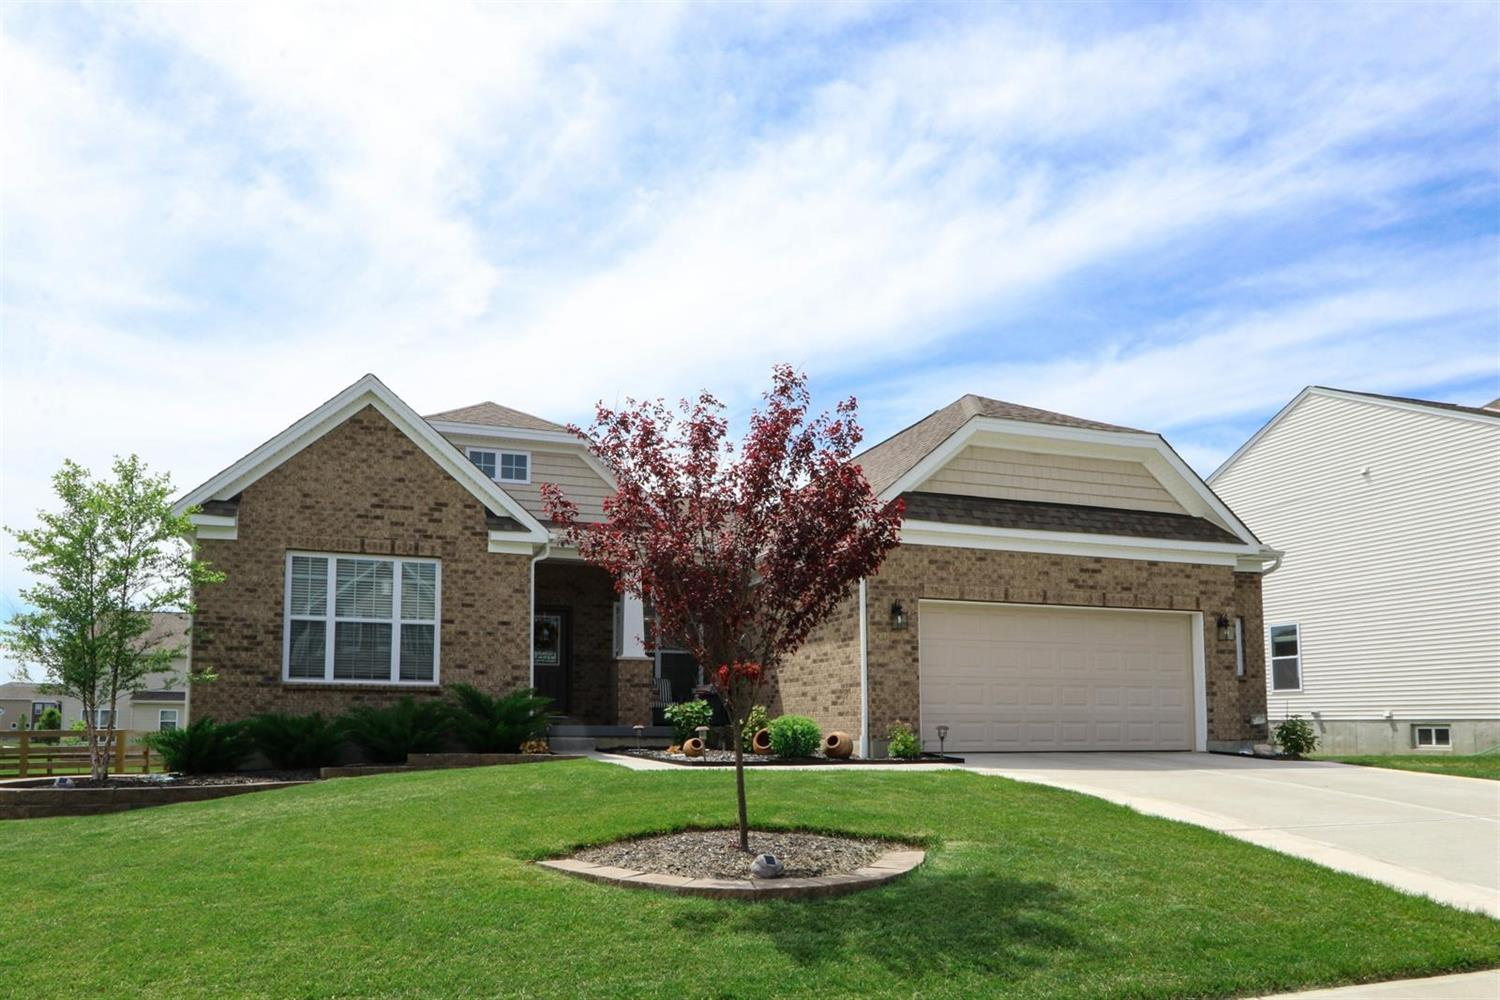 Property for sale at 4136 Bluestem Drive, Turtle Creek Twp,  Ohio 45036